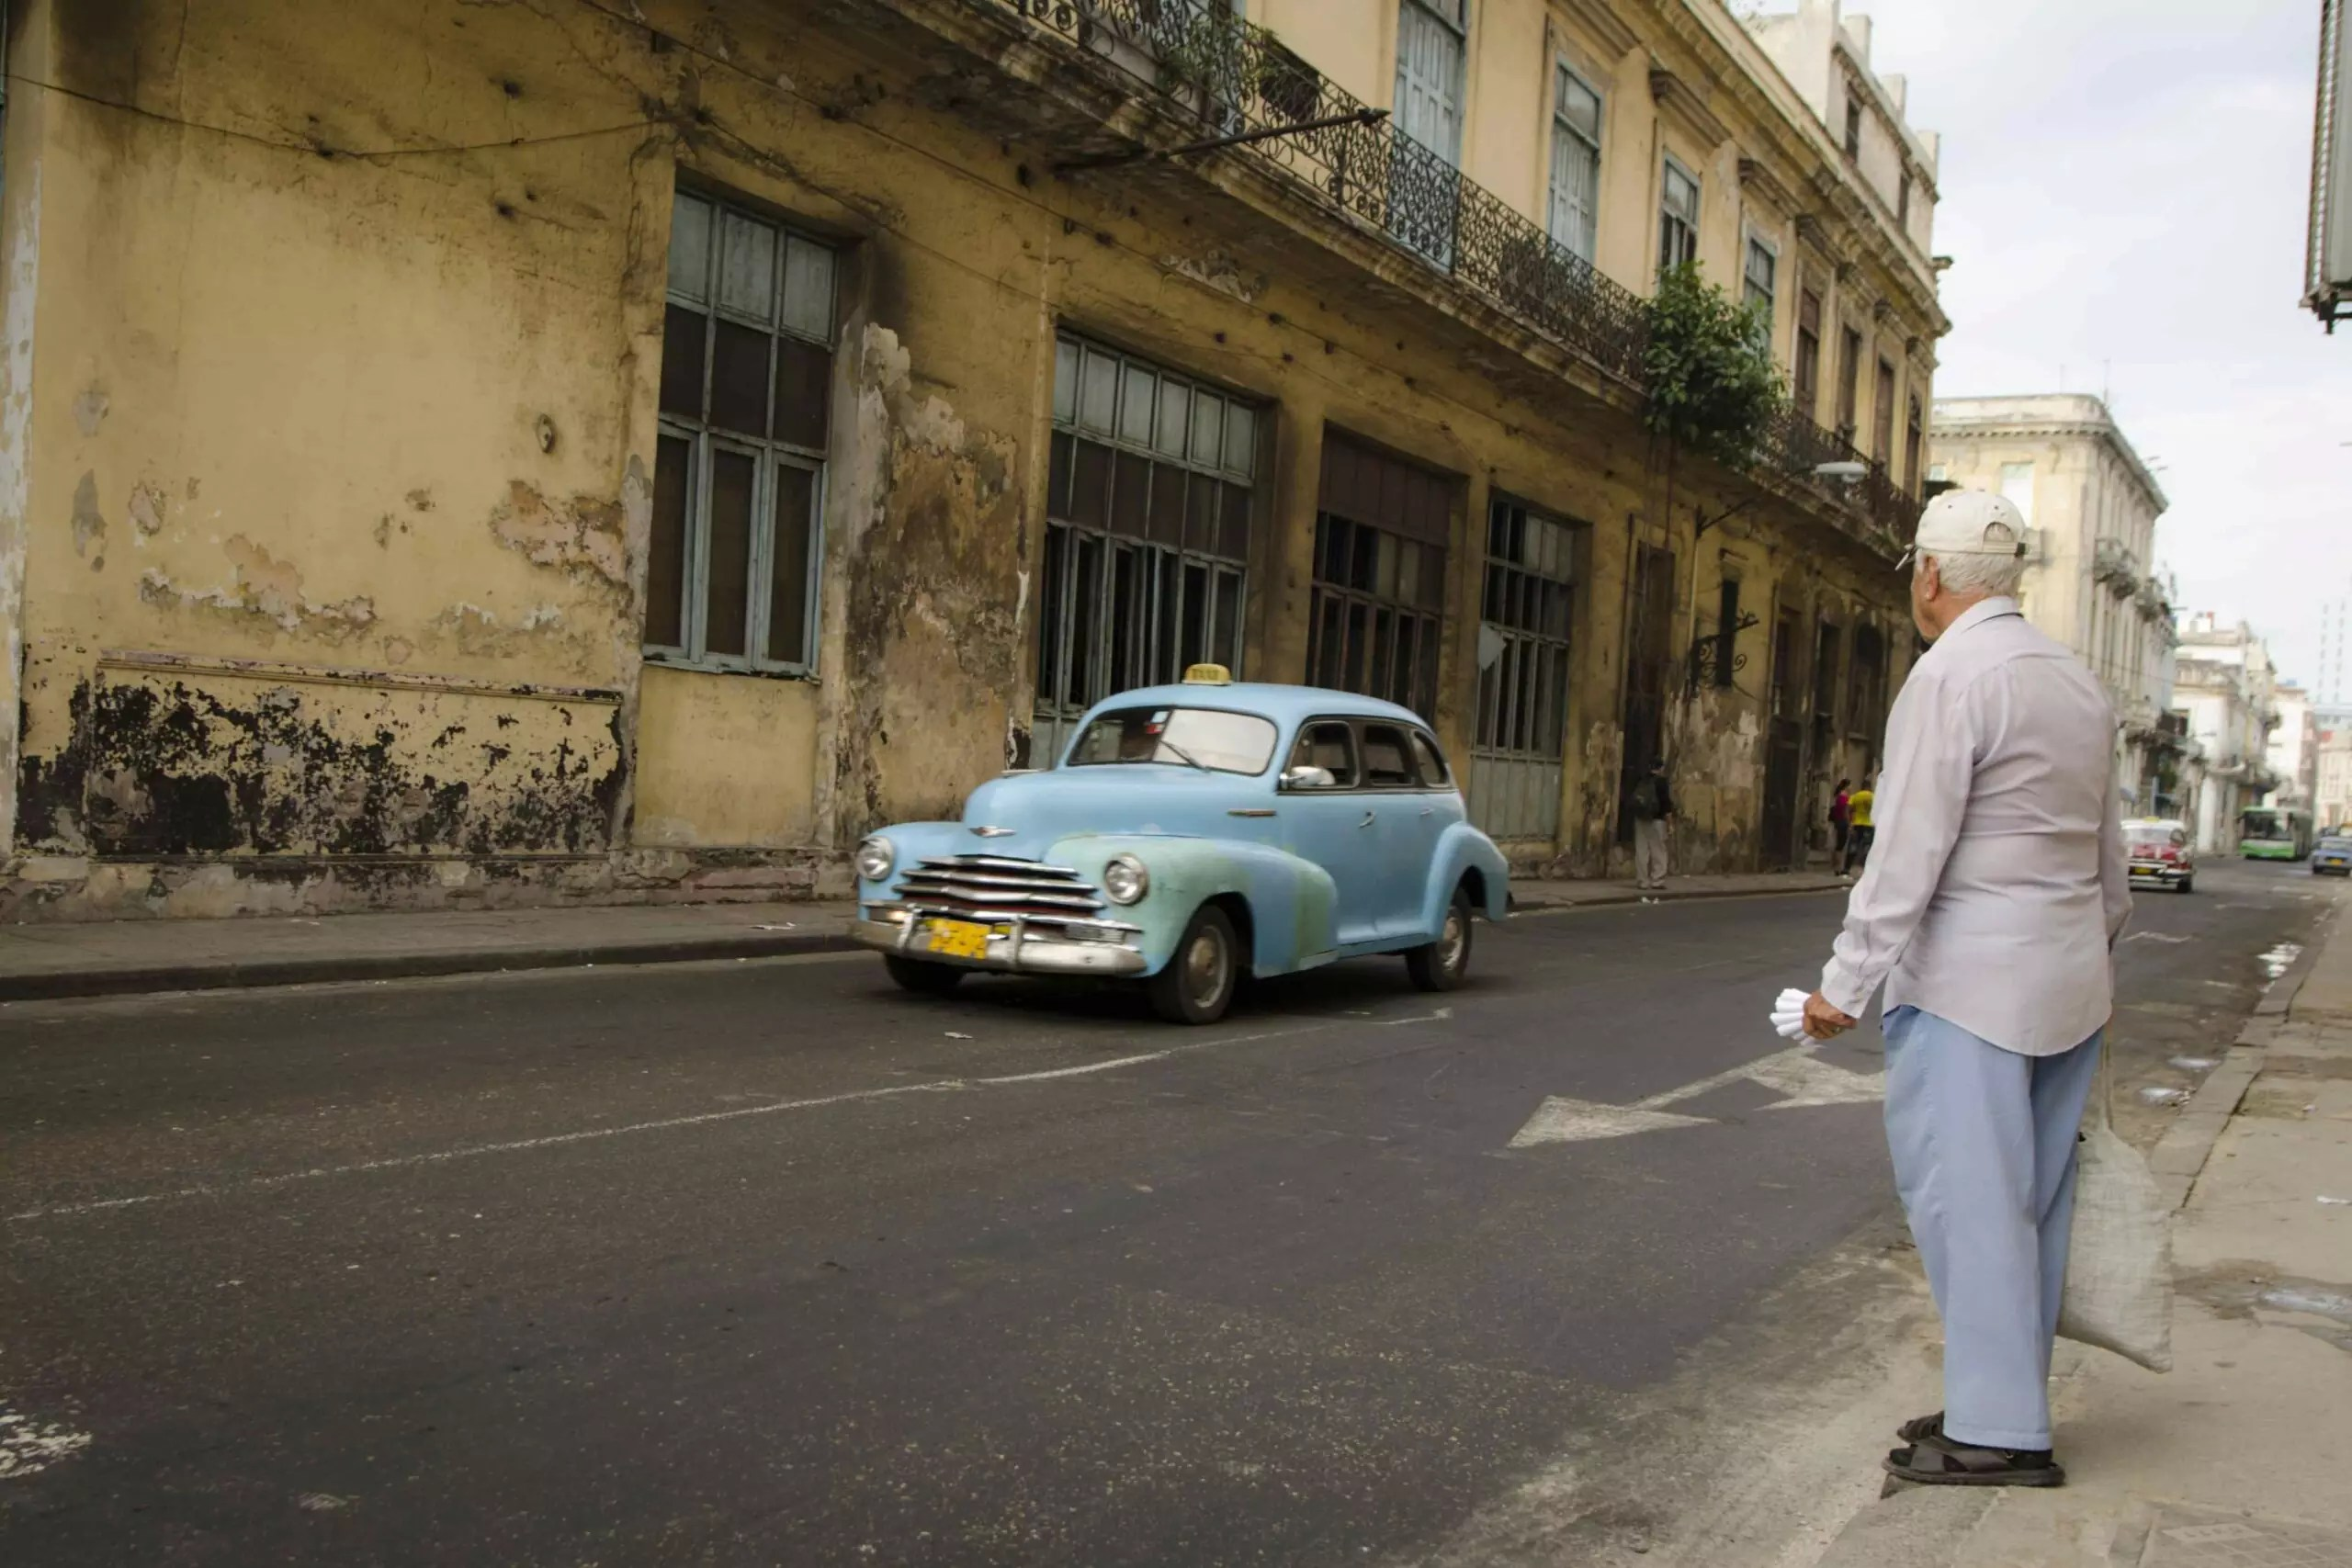 things to do in havana - All-Inclusive Hotels - DON'T: Stay at the resort during your whole stay! – Don't ever skip on visiting Havana when you're in Cuba! Where to stay in Havana